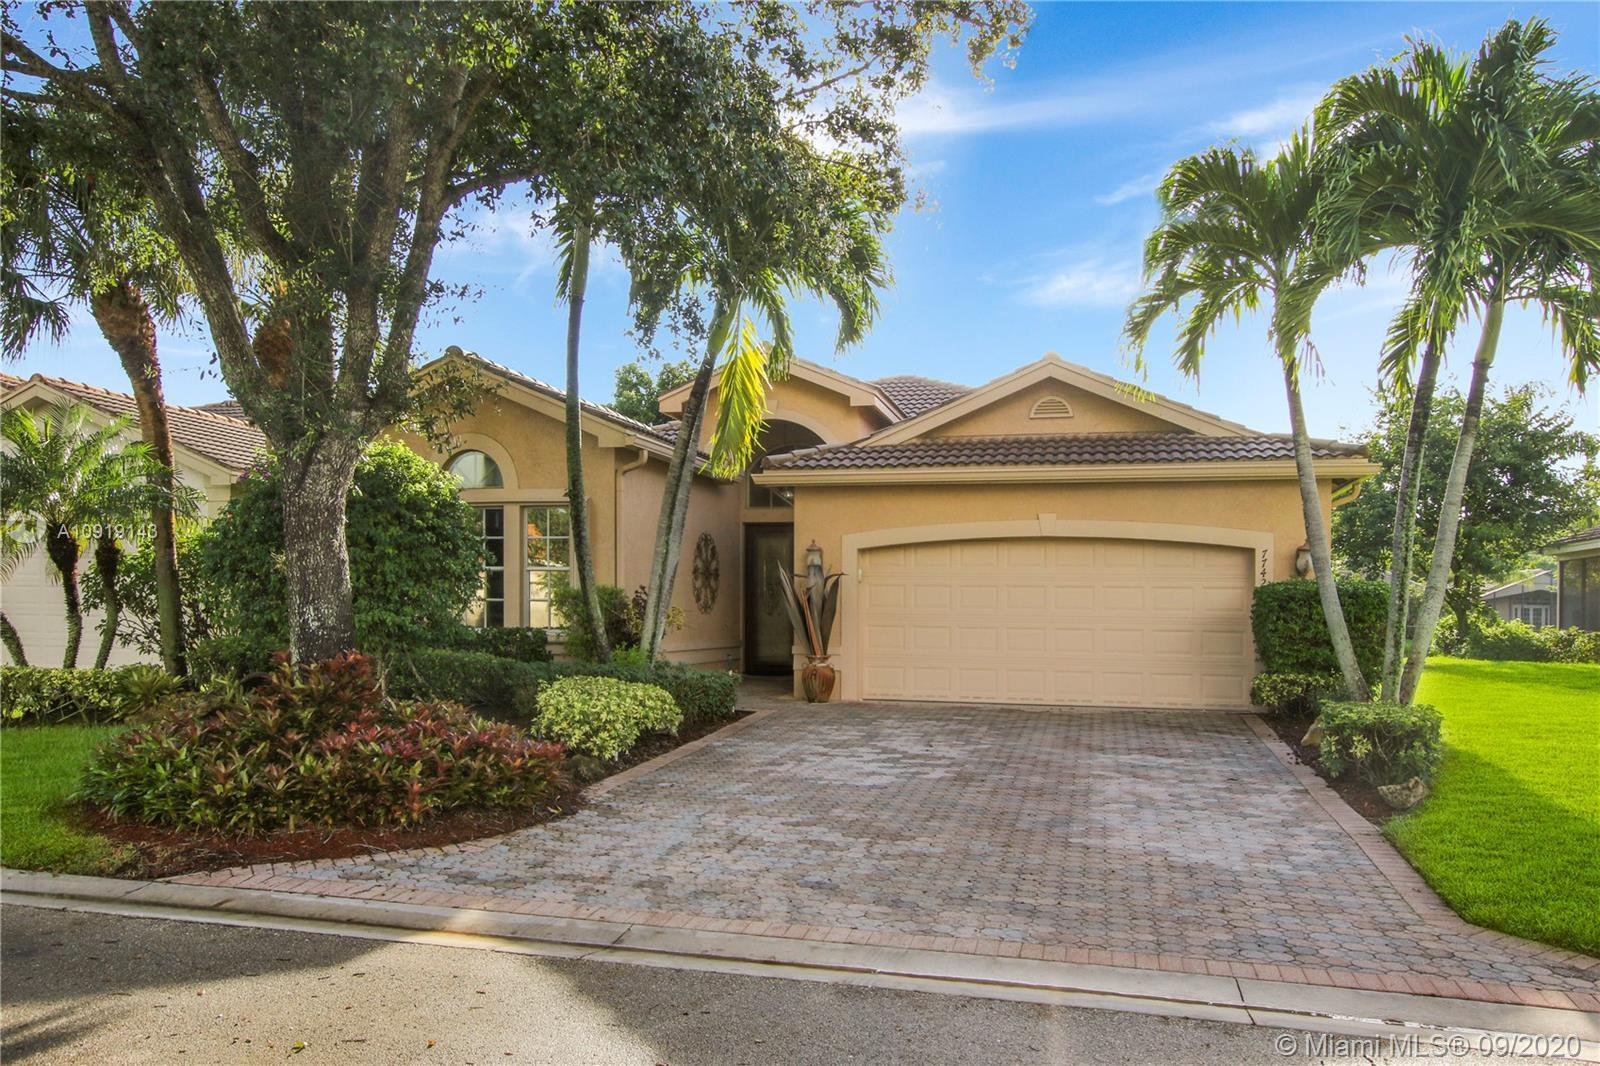 IMMACULATE 3BD/2BA MEDITERRANEAN (2077 SF) MODEL IN RESORT STYLE 55+VALENCIA SHORES. MAGNIFICENT HIG